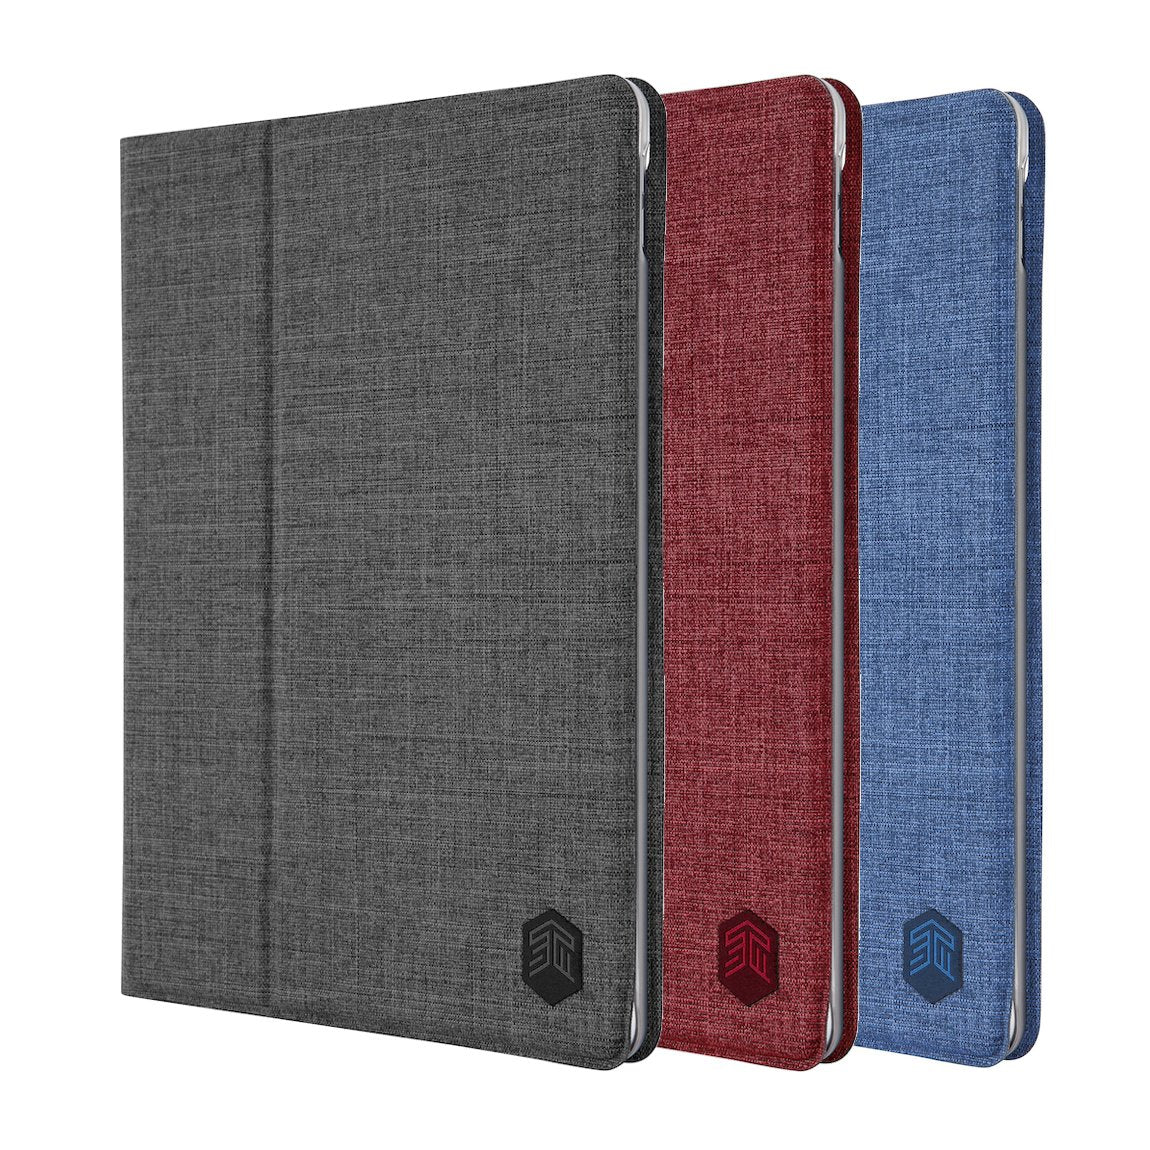 Stm Dux Plus Rugged Folio Case W Pencil Holder For Ipad